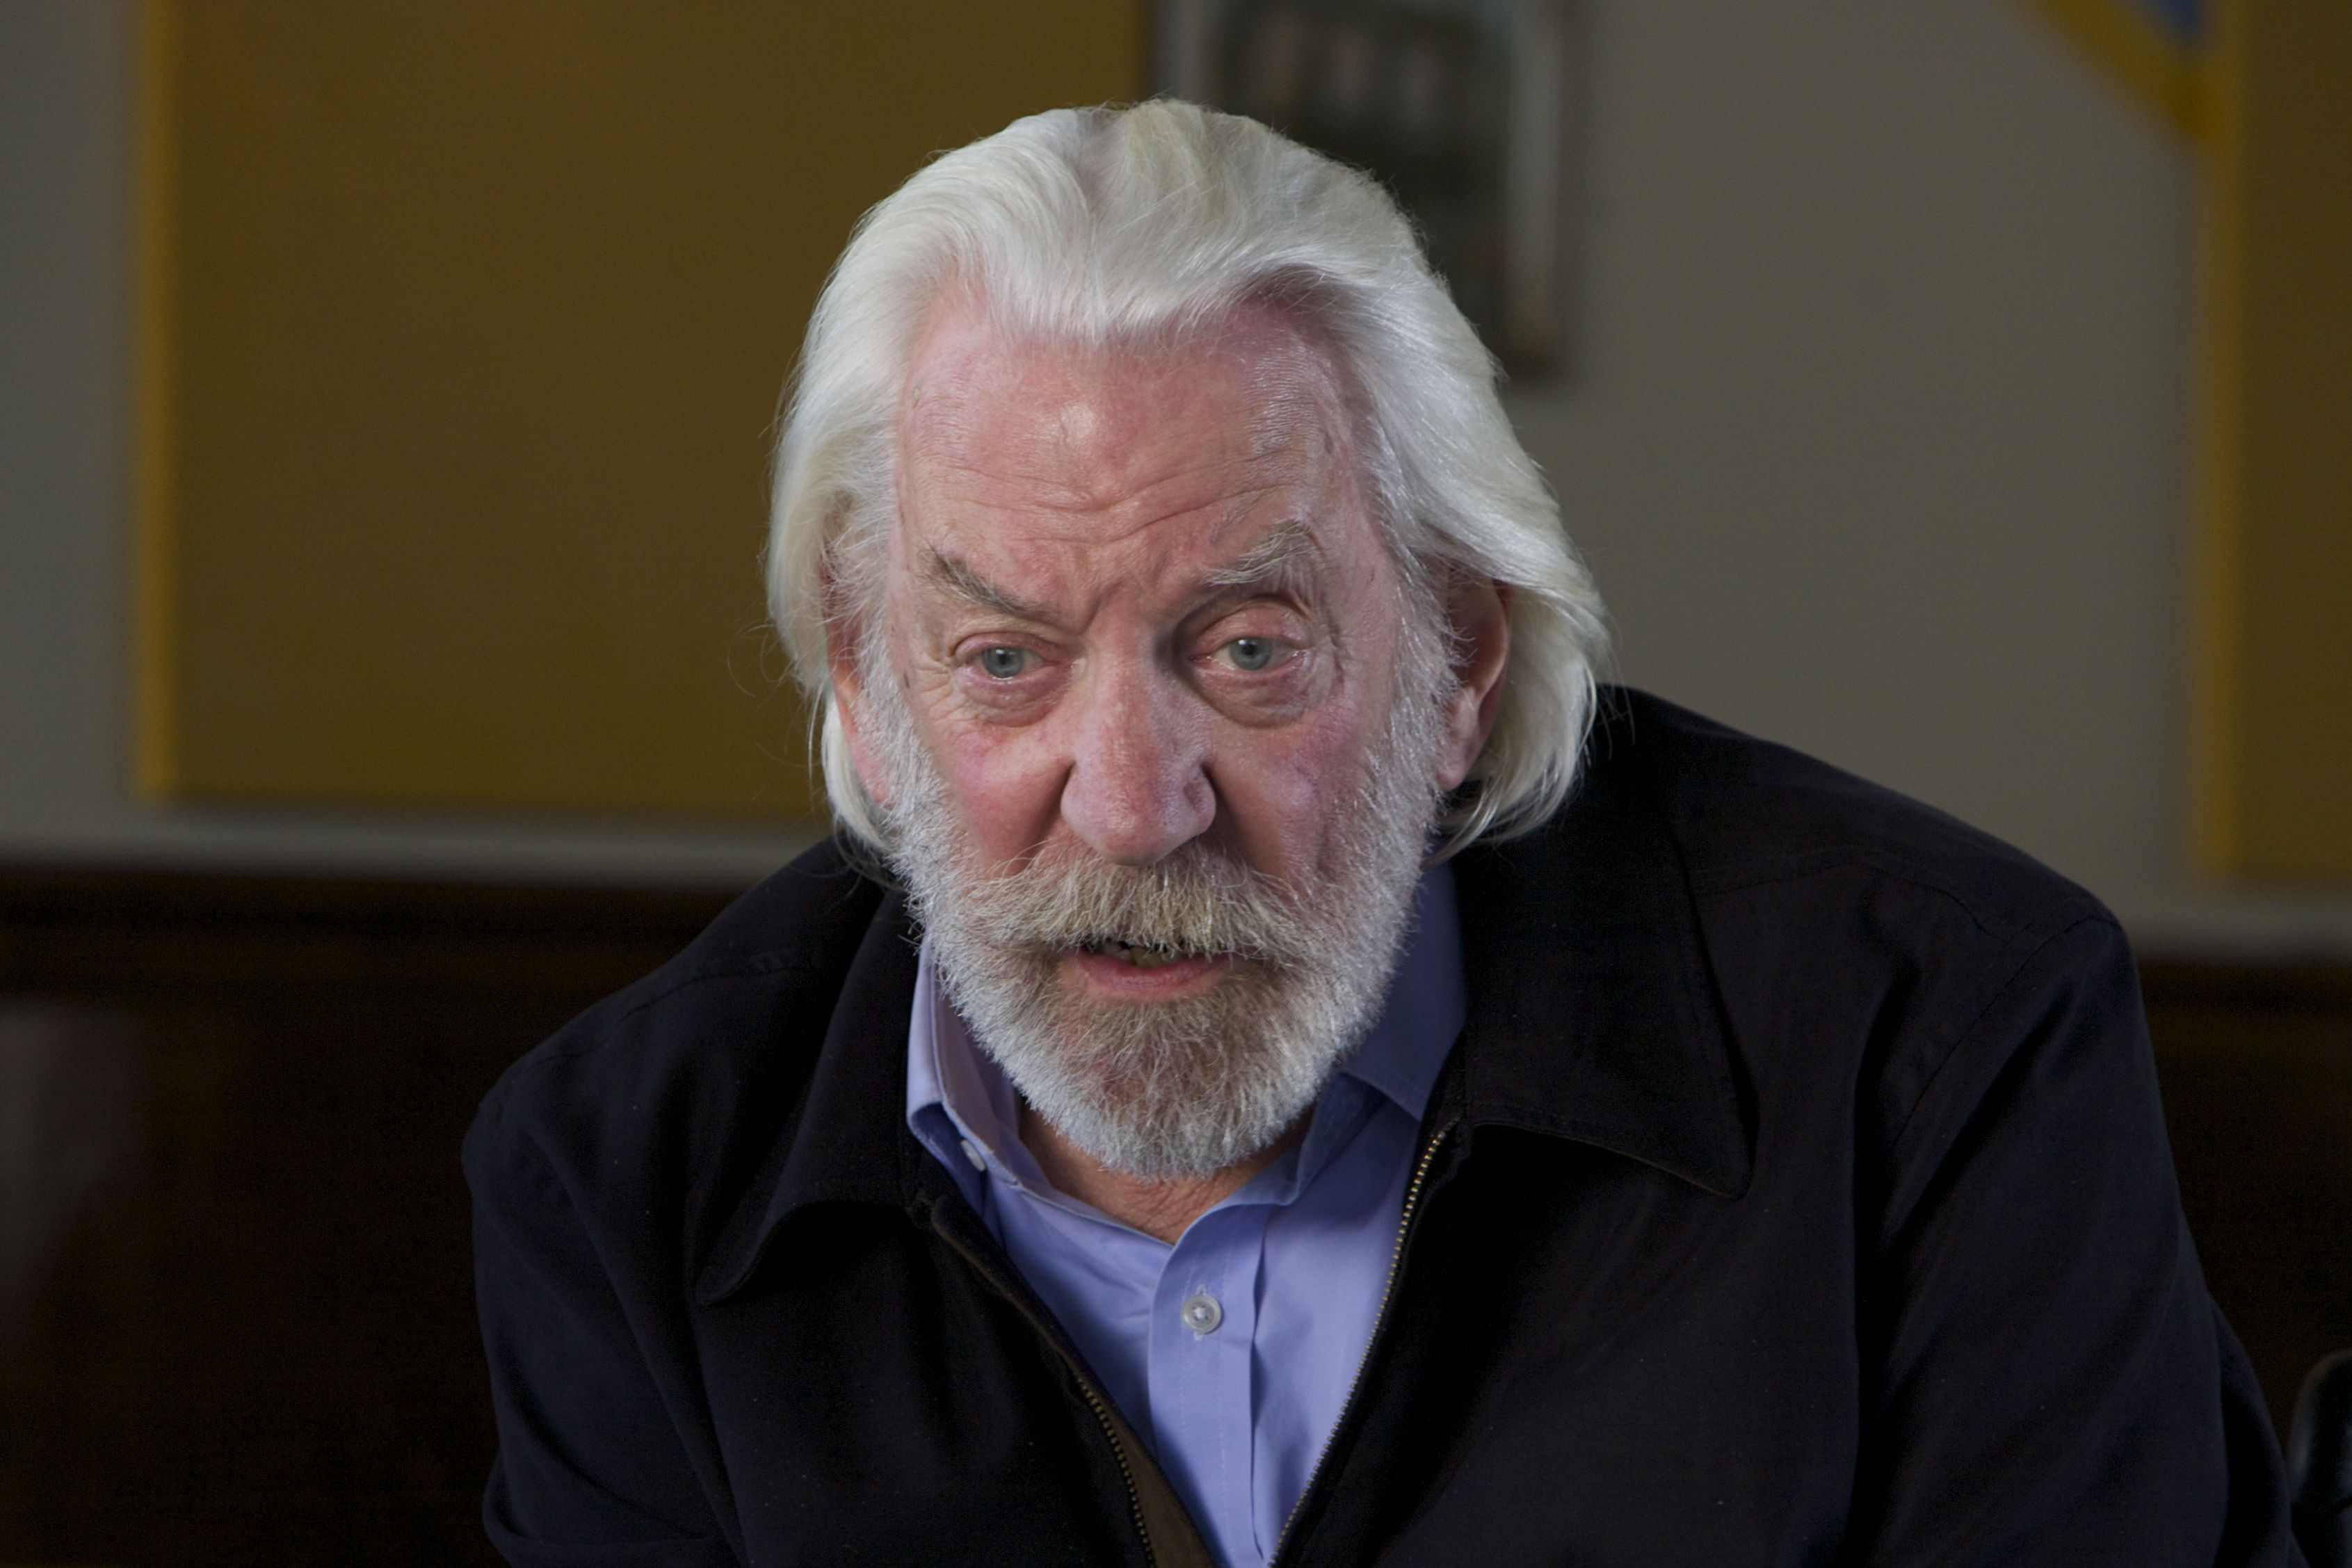 donald sutherland moviesdonald sutherland wiki, donald sutherland movies, donald sutherland e filho, donald sutherland imdb, donald sutherland kinopoisk, donald sutherland height, donald sutherland mash, donald sutherland tumblr, donald sutherland dirty dozen, donald sutherland snow, donald sutherland alyssa sutherland, donald sutherland sean connery, donald sutherland best movies, donald sutherland villain, donald sutherland game of thrones, donald sutherland films, donald sutherland umd, donald sutherland net worth, donald sutherland young, donald sutherland natal chart